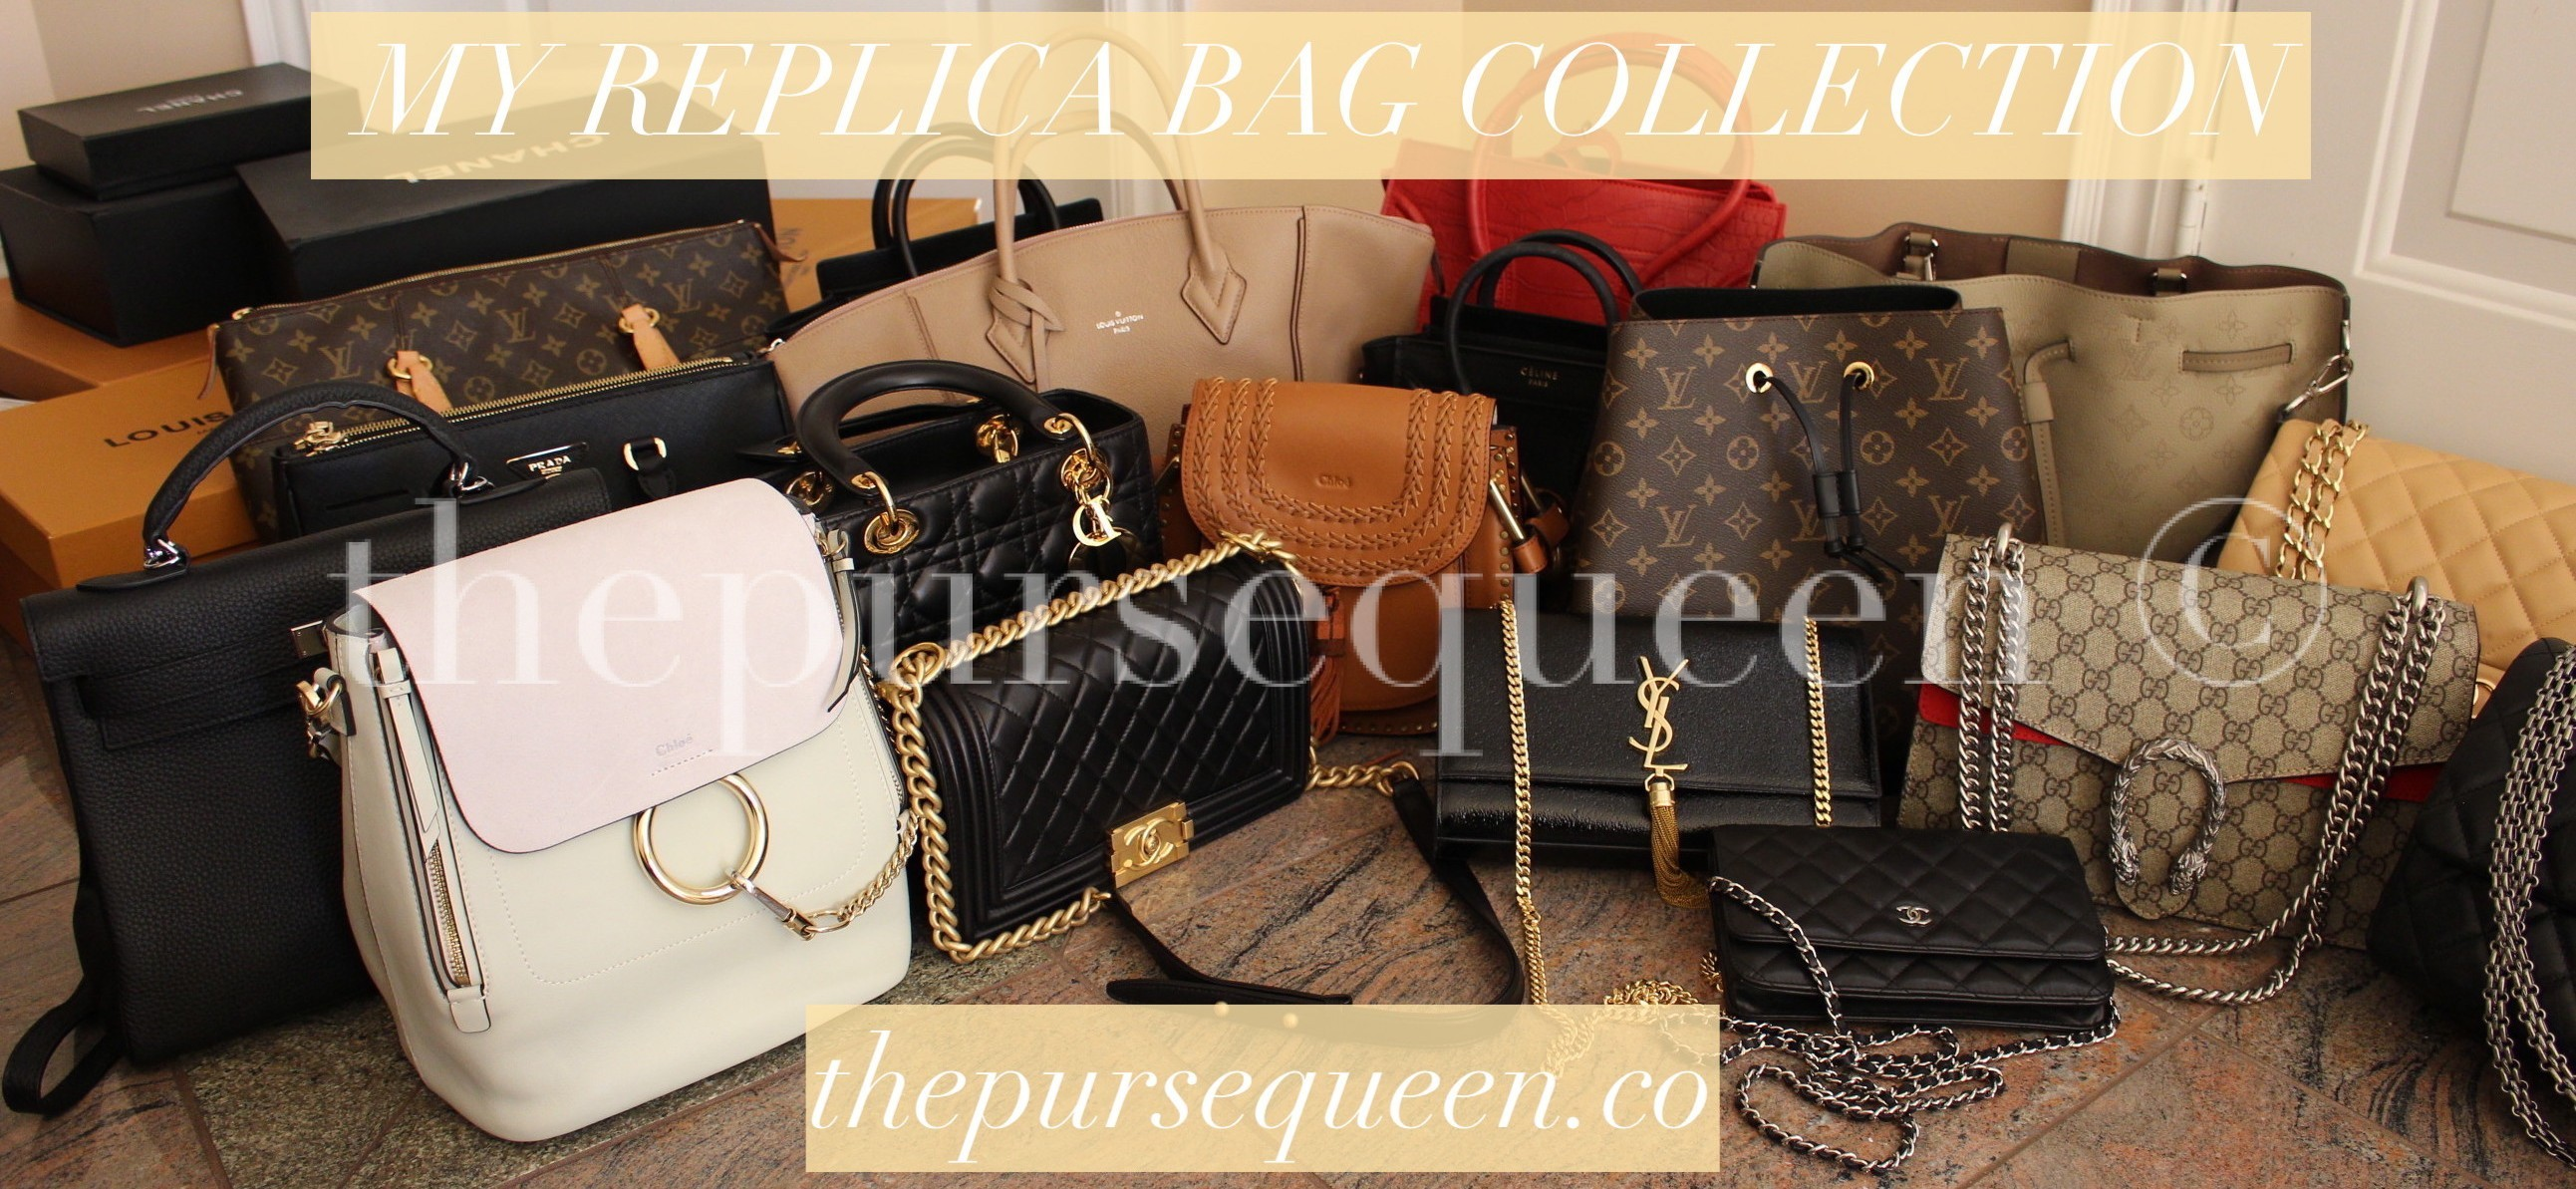 RECOMMENDED REPLICA SELLERS LIST - Authentic   Replica Handbag Reviews by  The Purse Queen  replicabag 9b1ca641c1